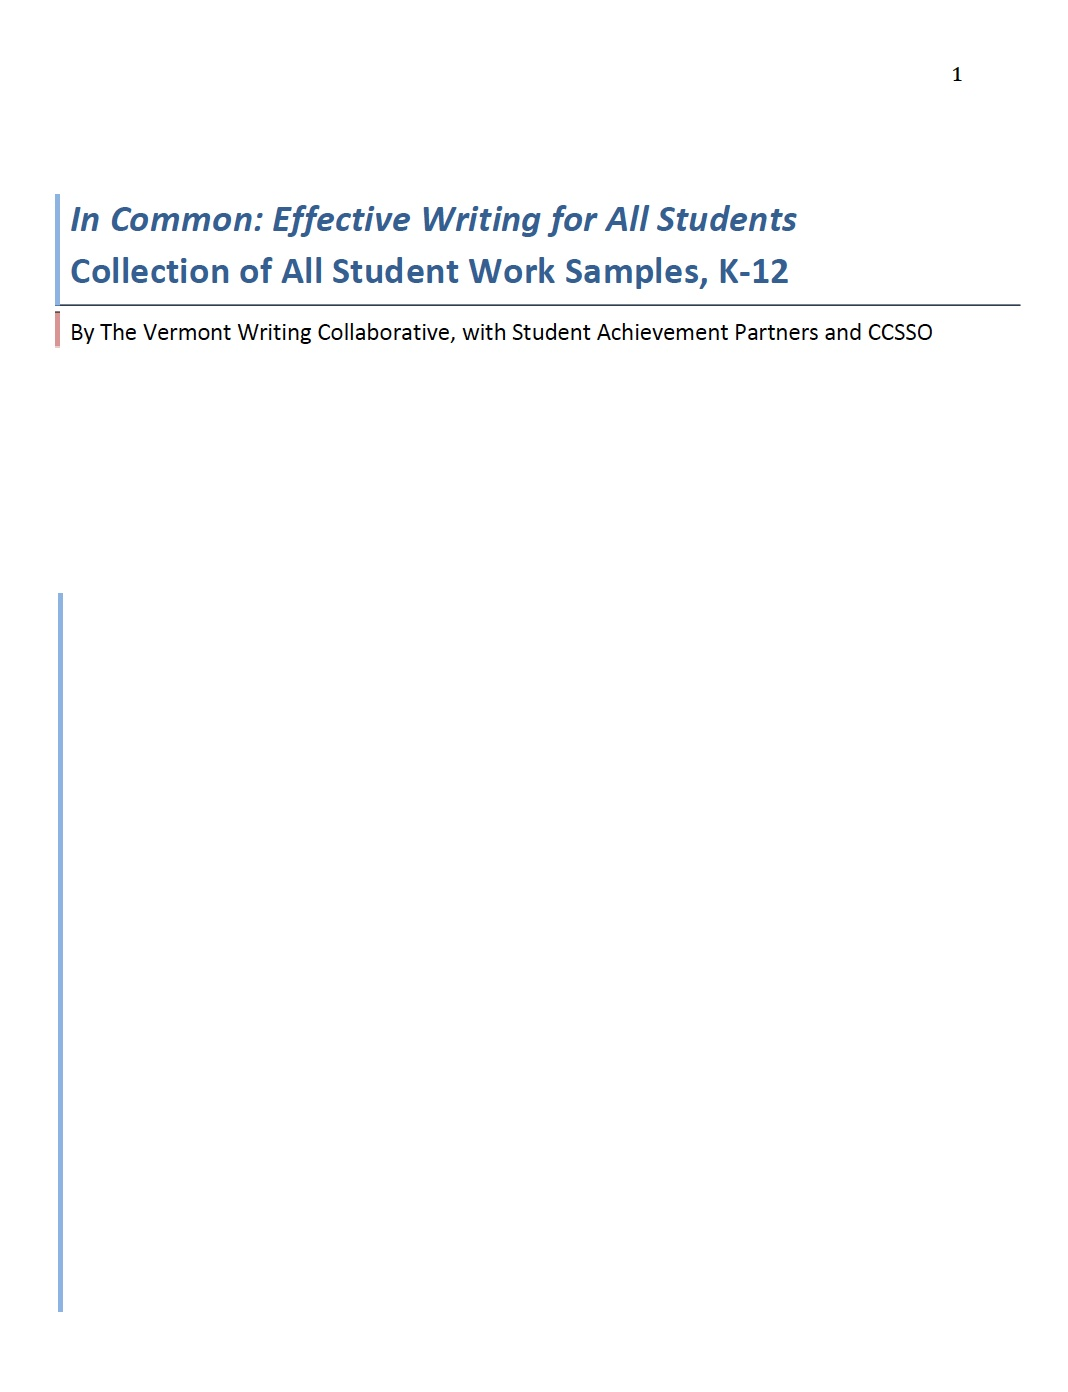 Effective Writing for All Students